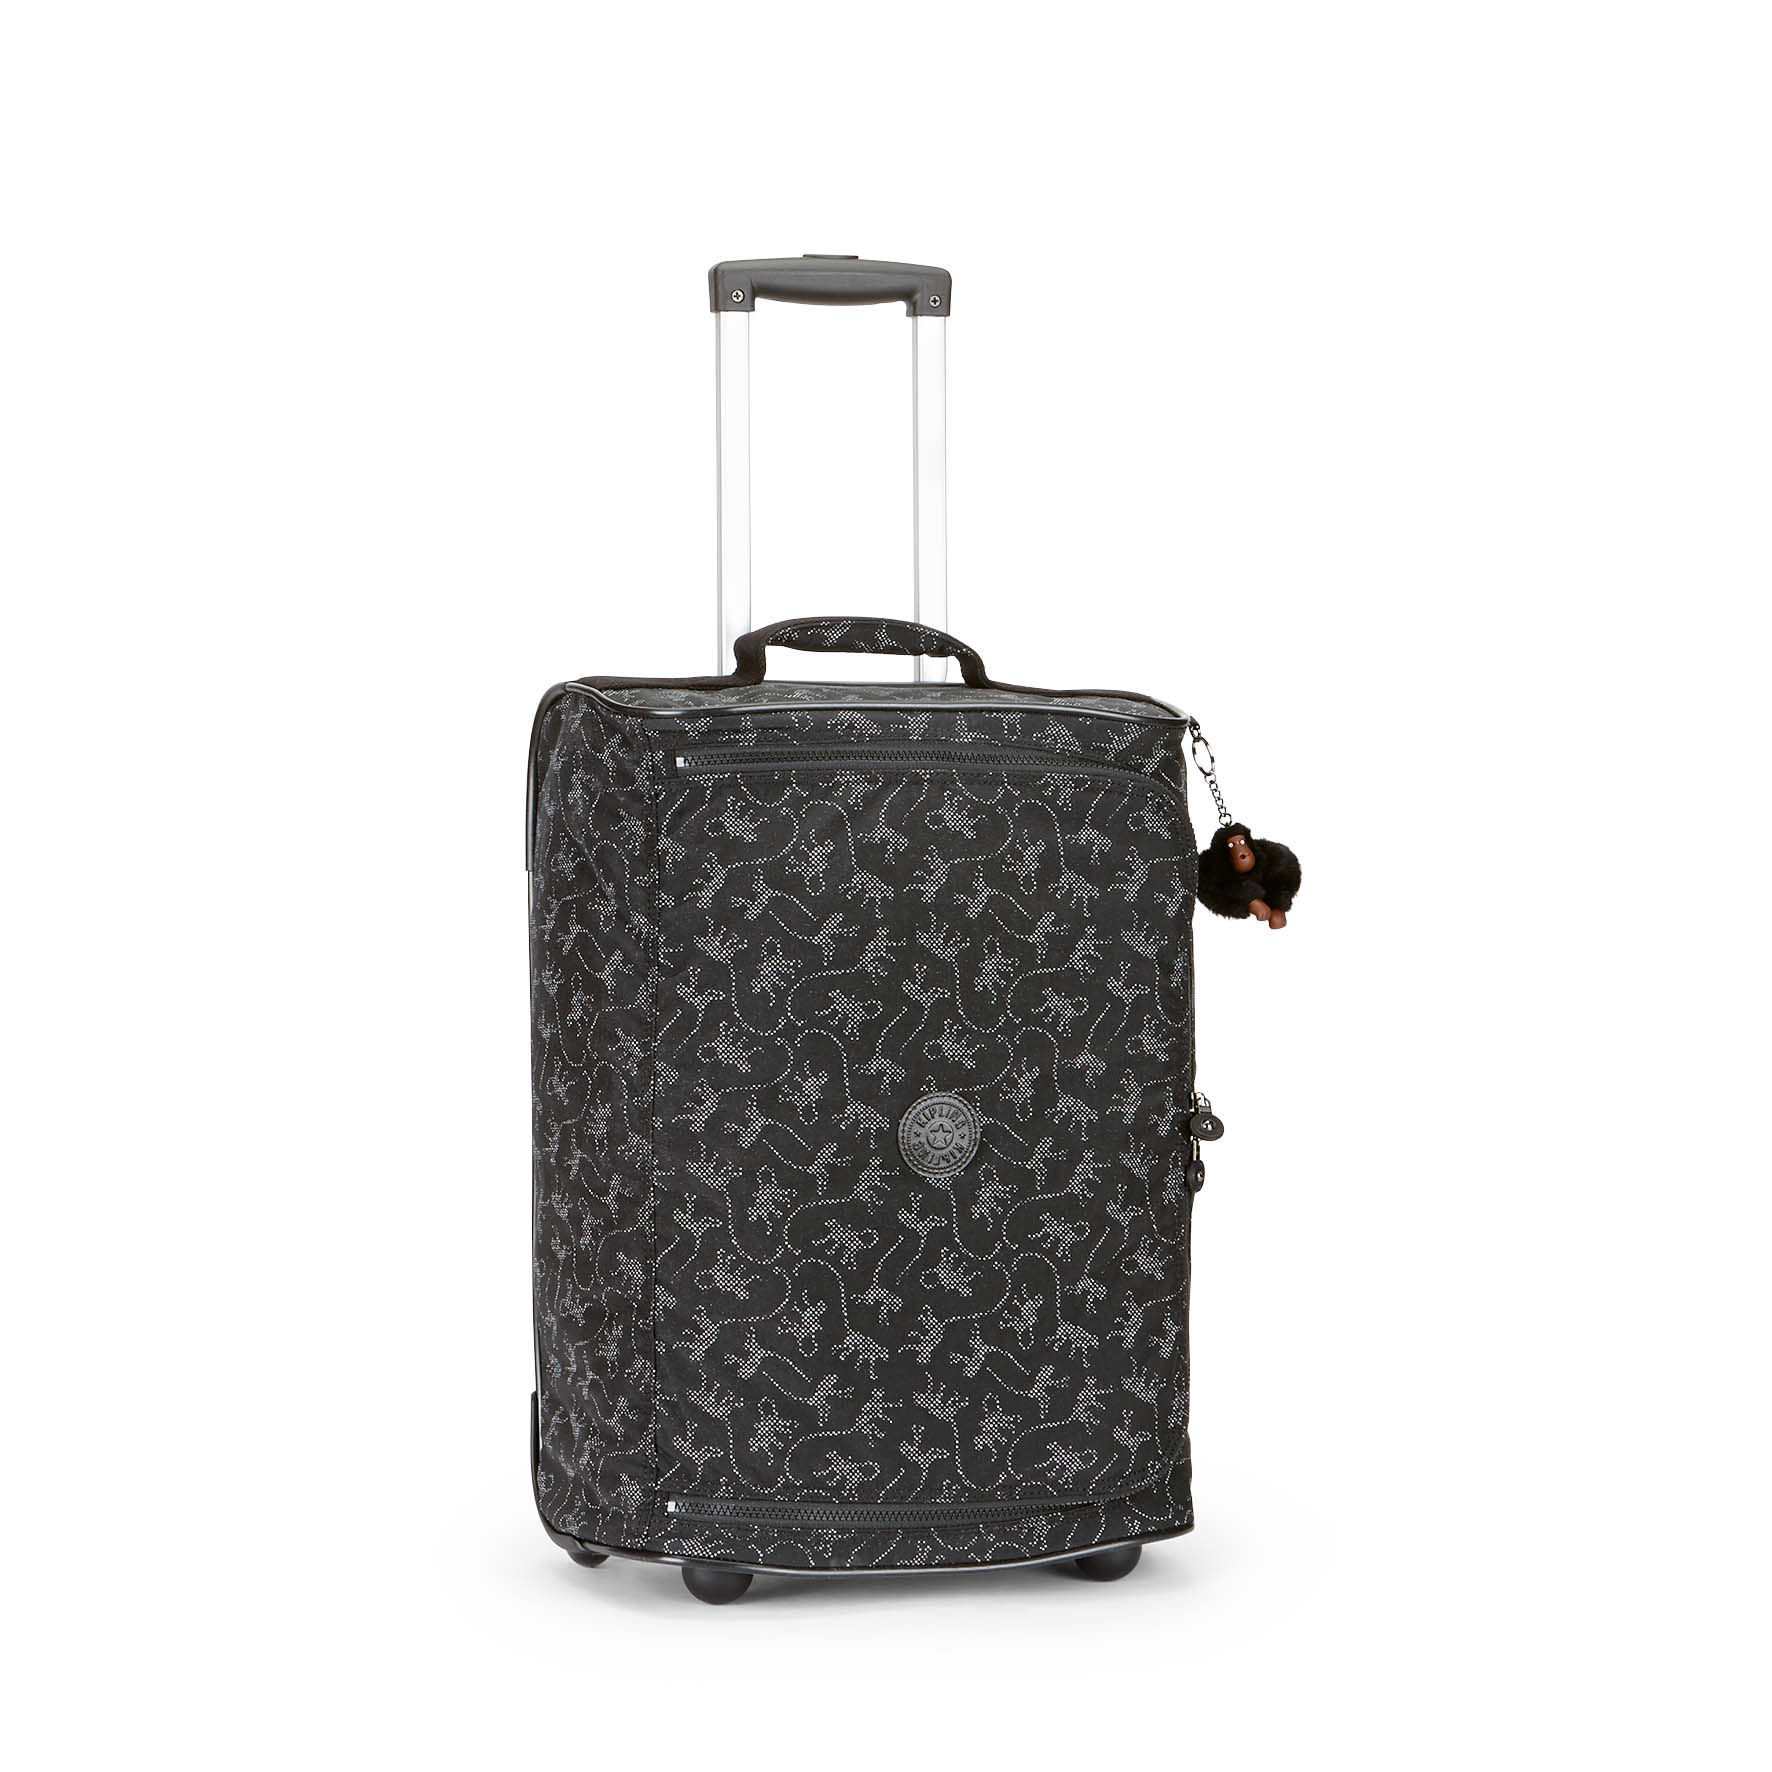 Kipling Teagen extra small wheeled duffle bag Black